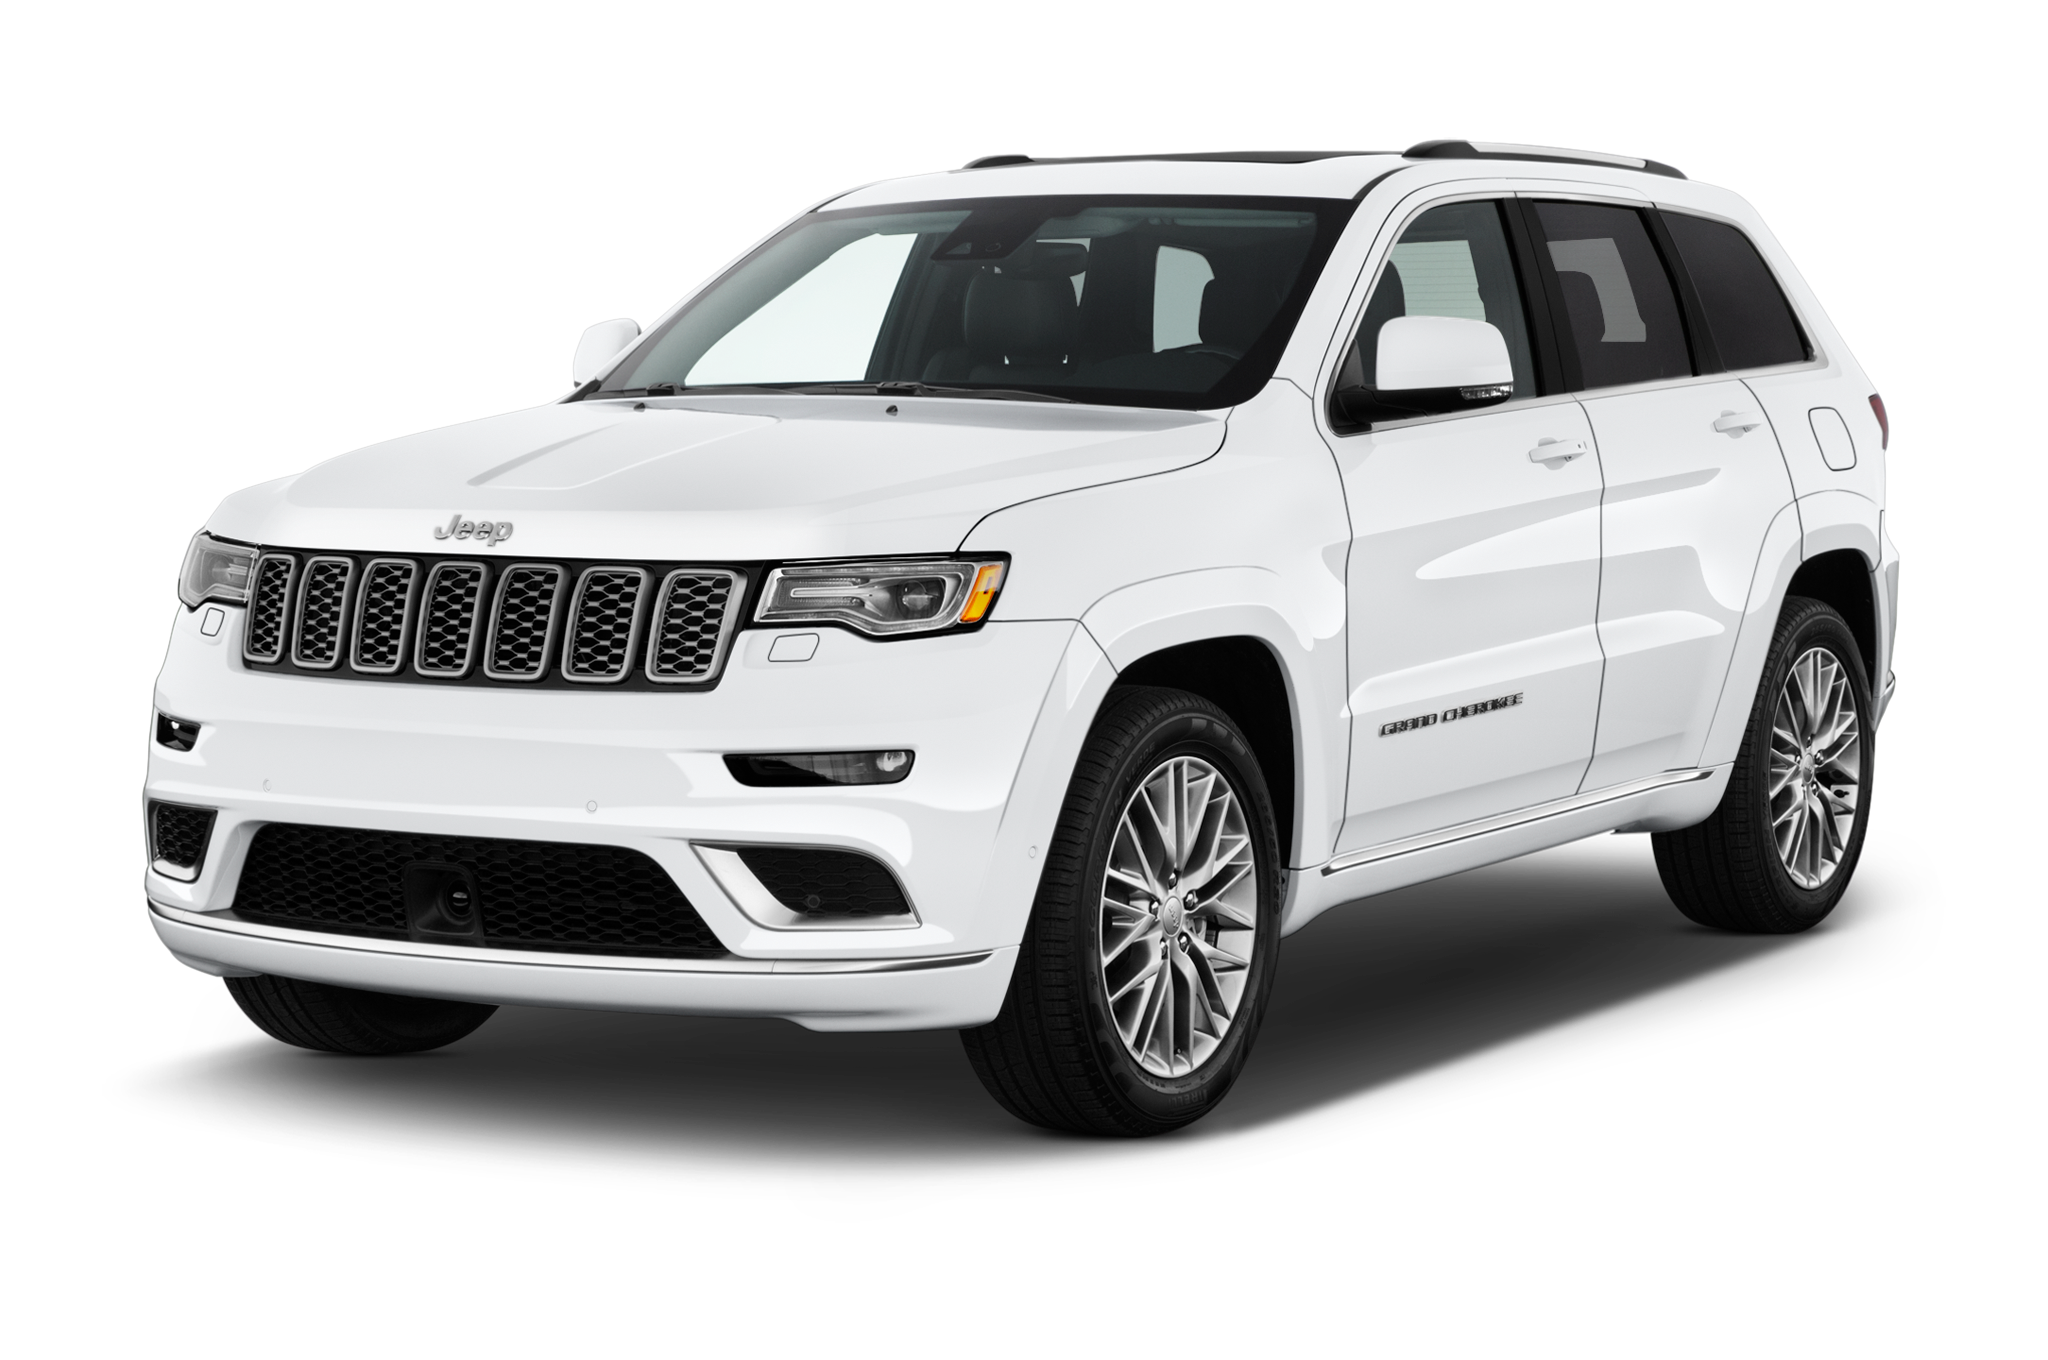 2017 jeep grand cherokee summit 4wd pricing msn autos. Black Bedroom Furniture Sets. Home Design Ideas